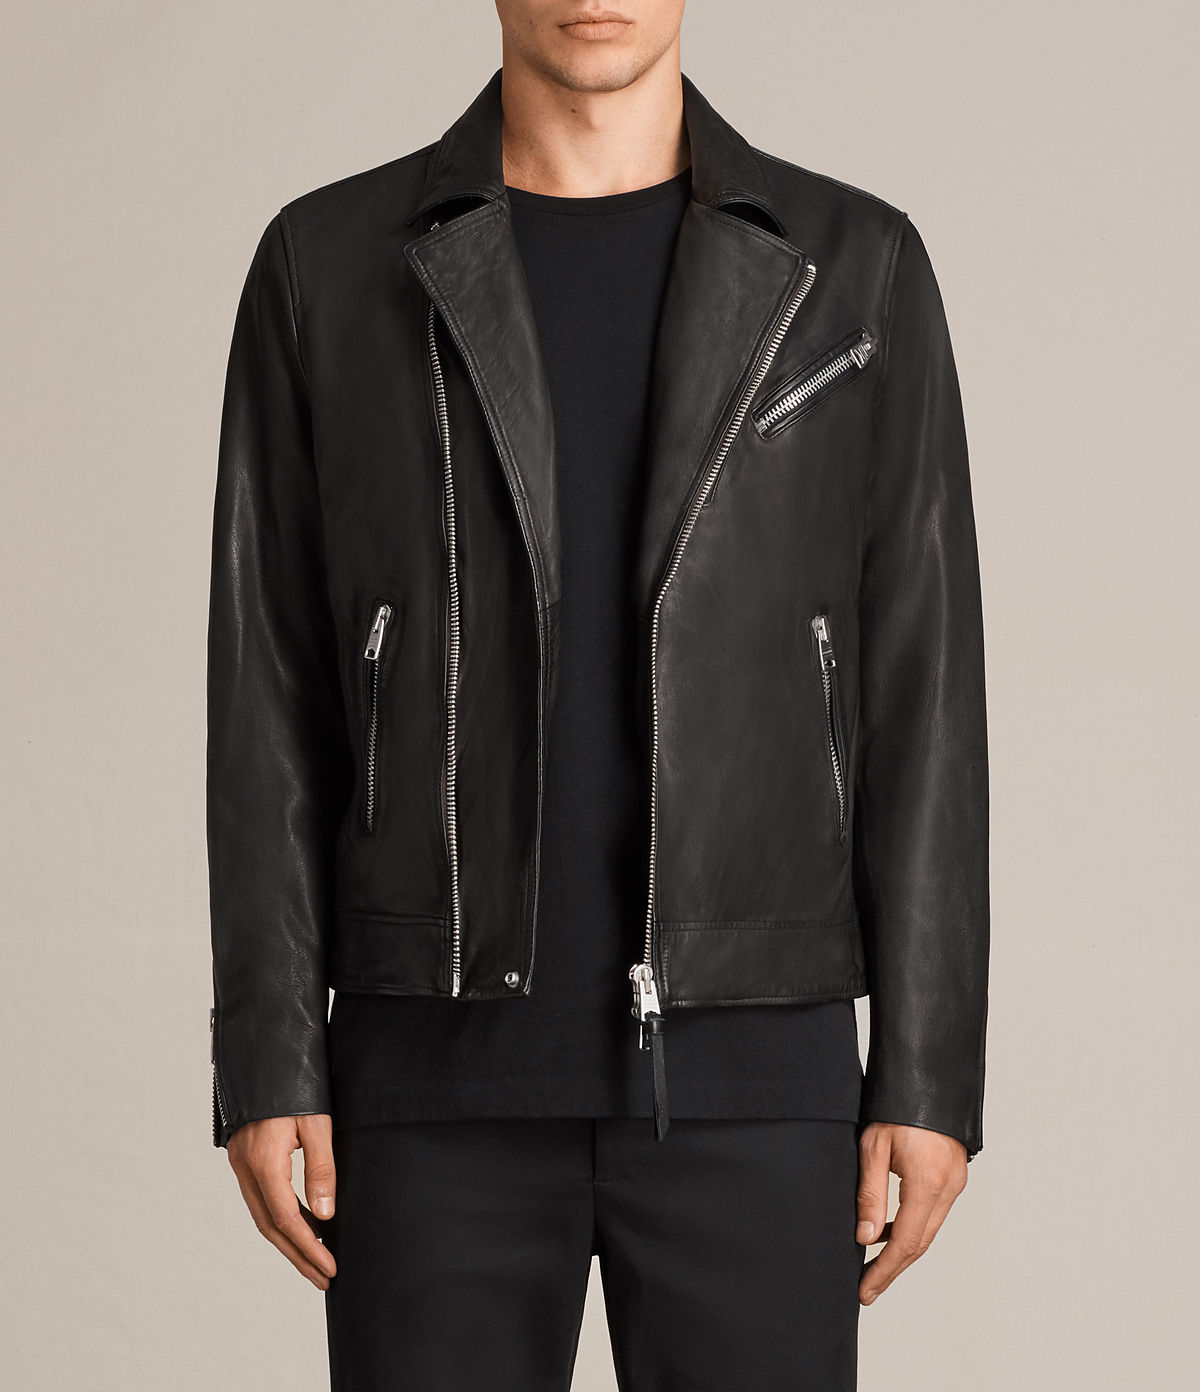 klisko-leather-biker-jacket